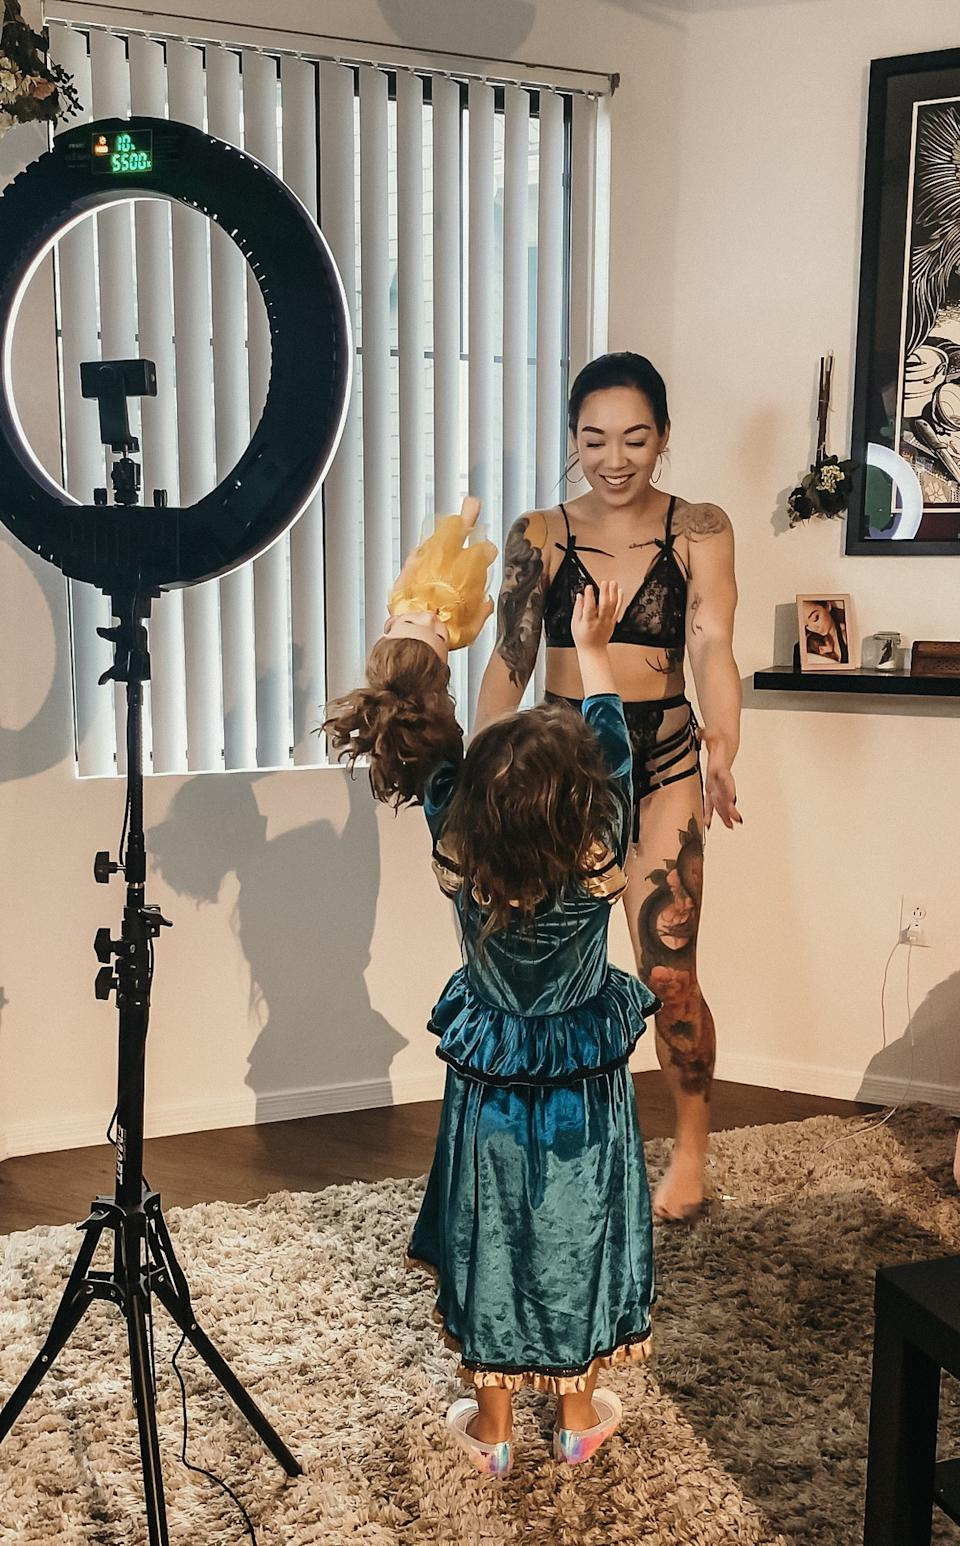 mum only fans shoot with daughter nearby